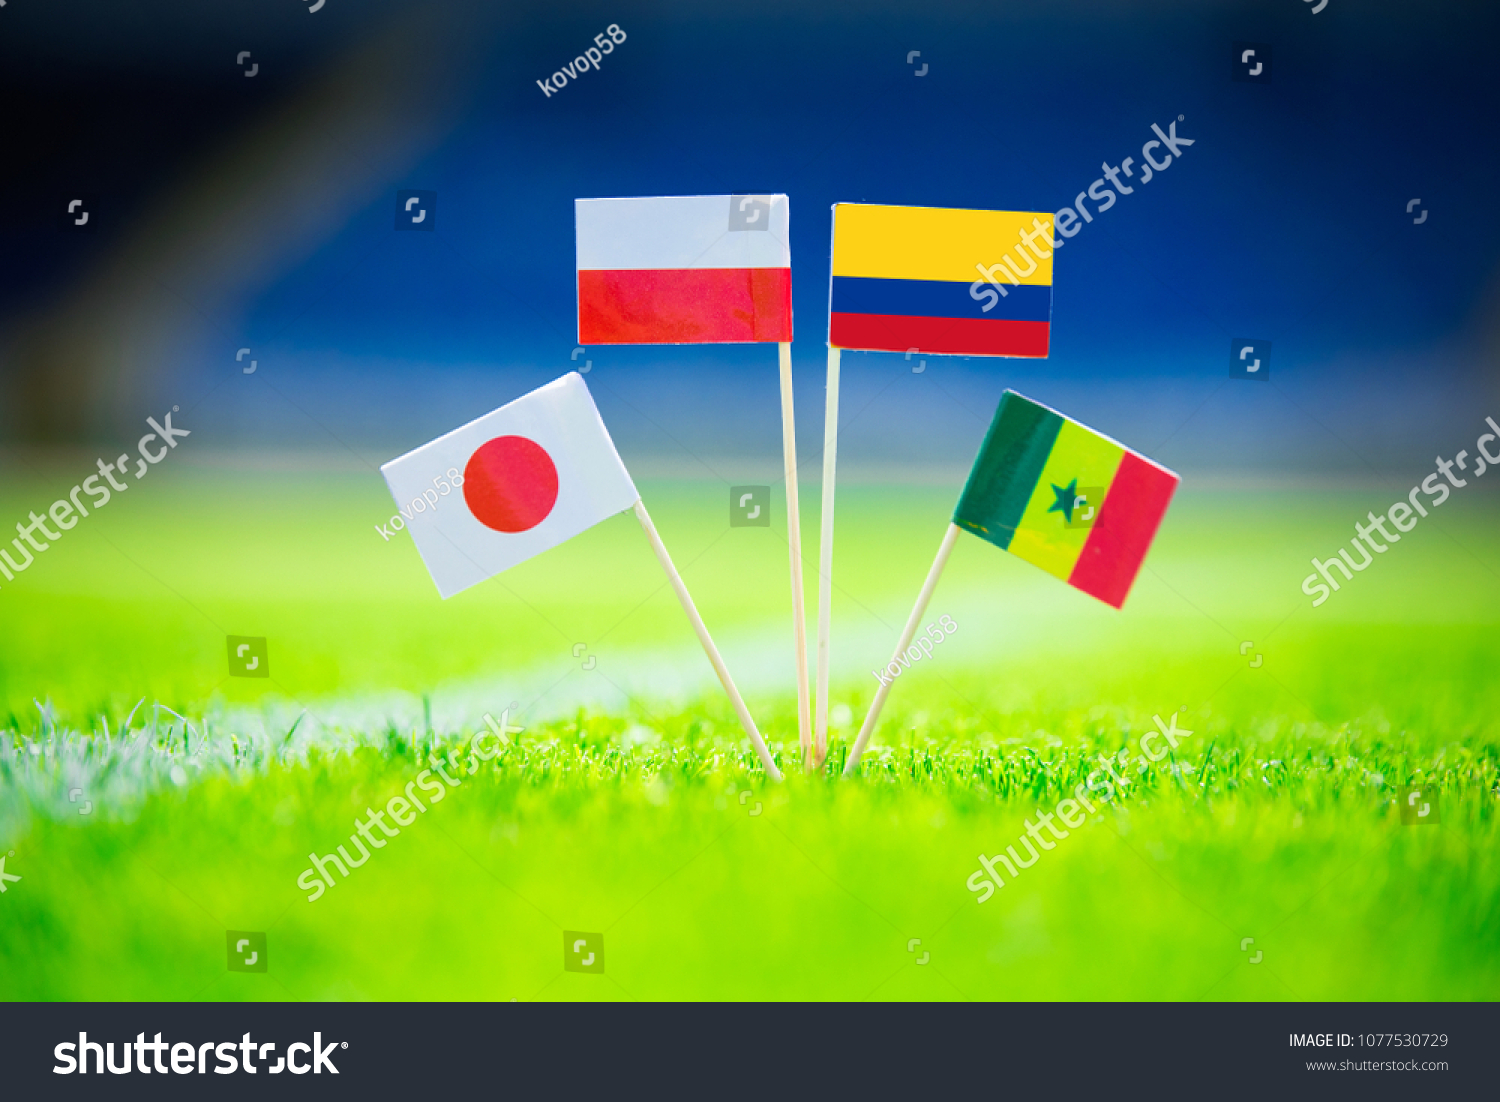 GROUP H draw in Russia 2018  - Poland, Senegal, Columbia, Japan national Flag and football ball on green grass. Fans, support photo, edit space. #1077530729